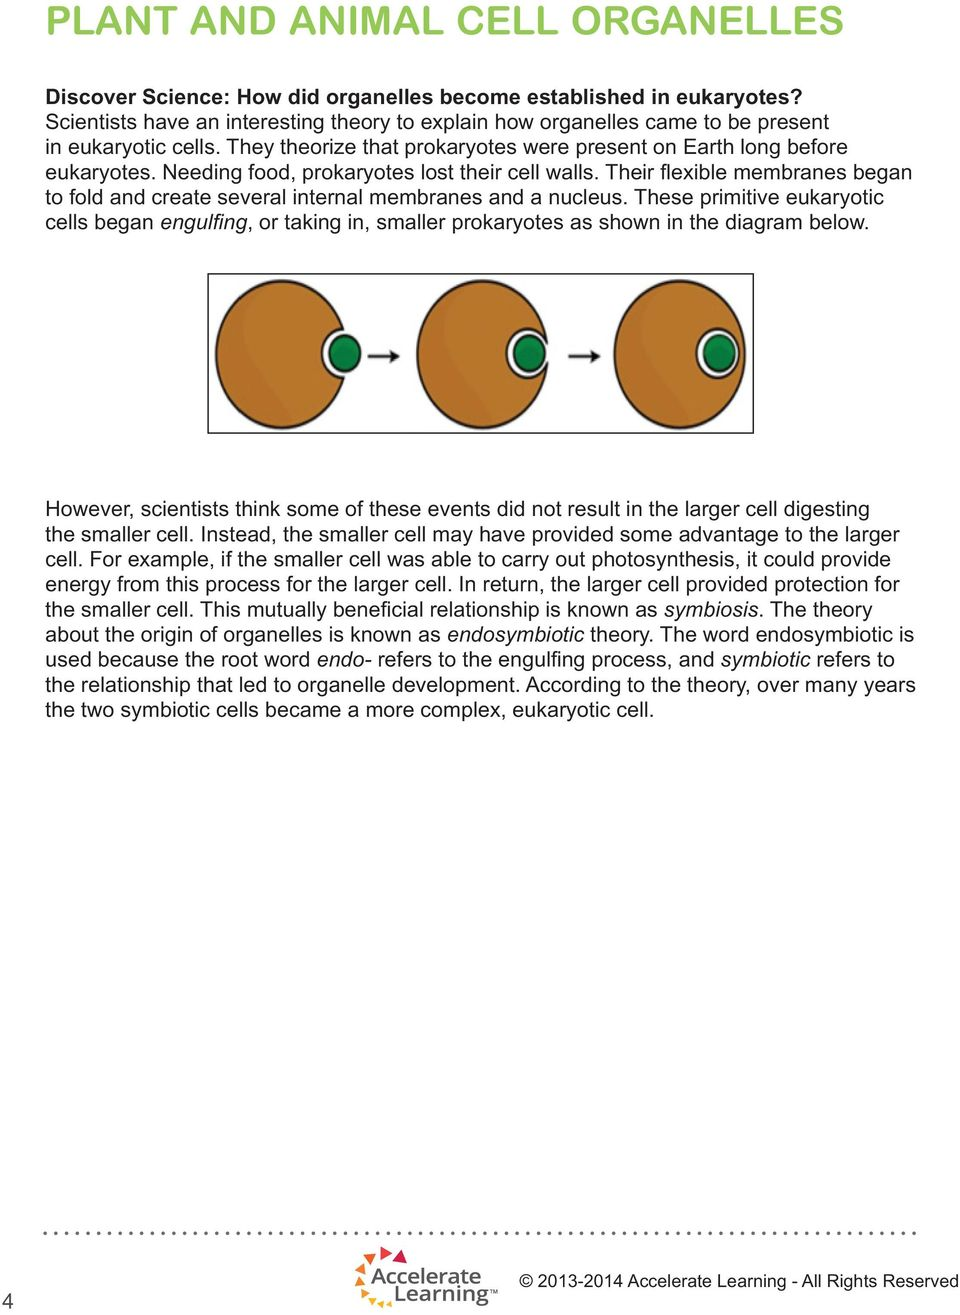 Plant And Animal Cell Organelles Pdf Prokaryotic Cells Diagram Below Learn About